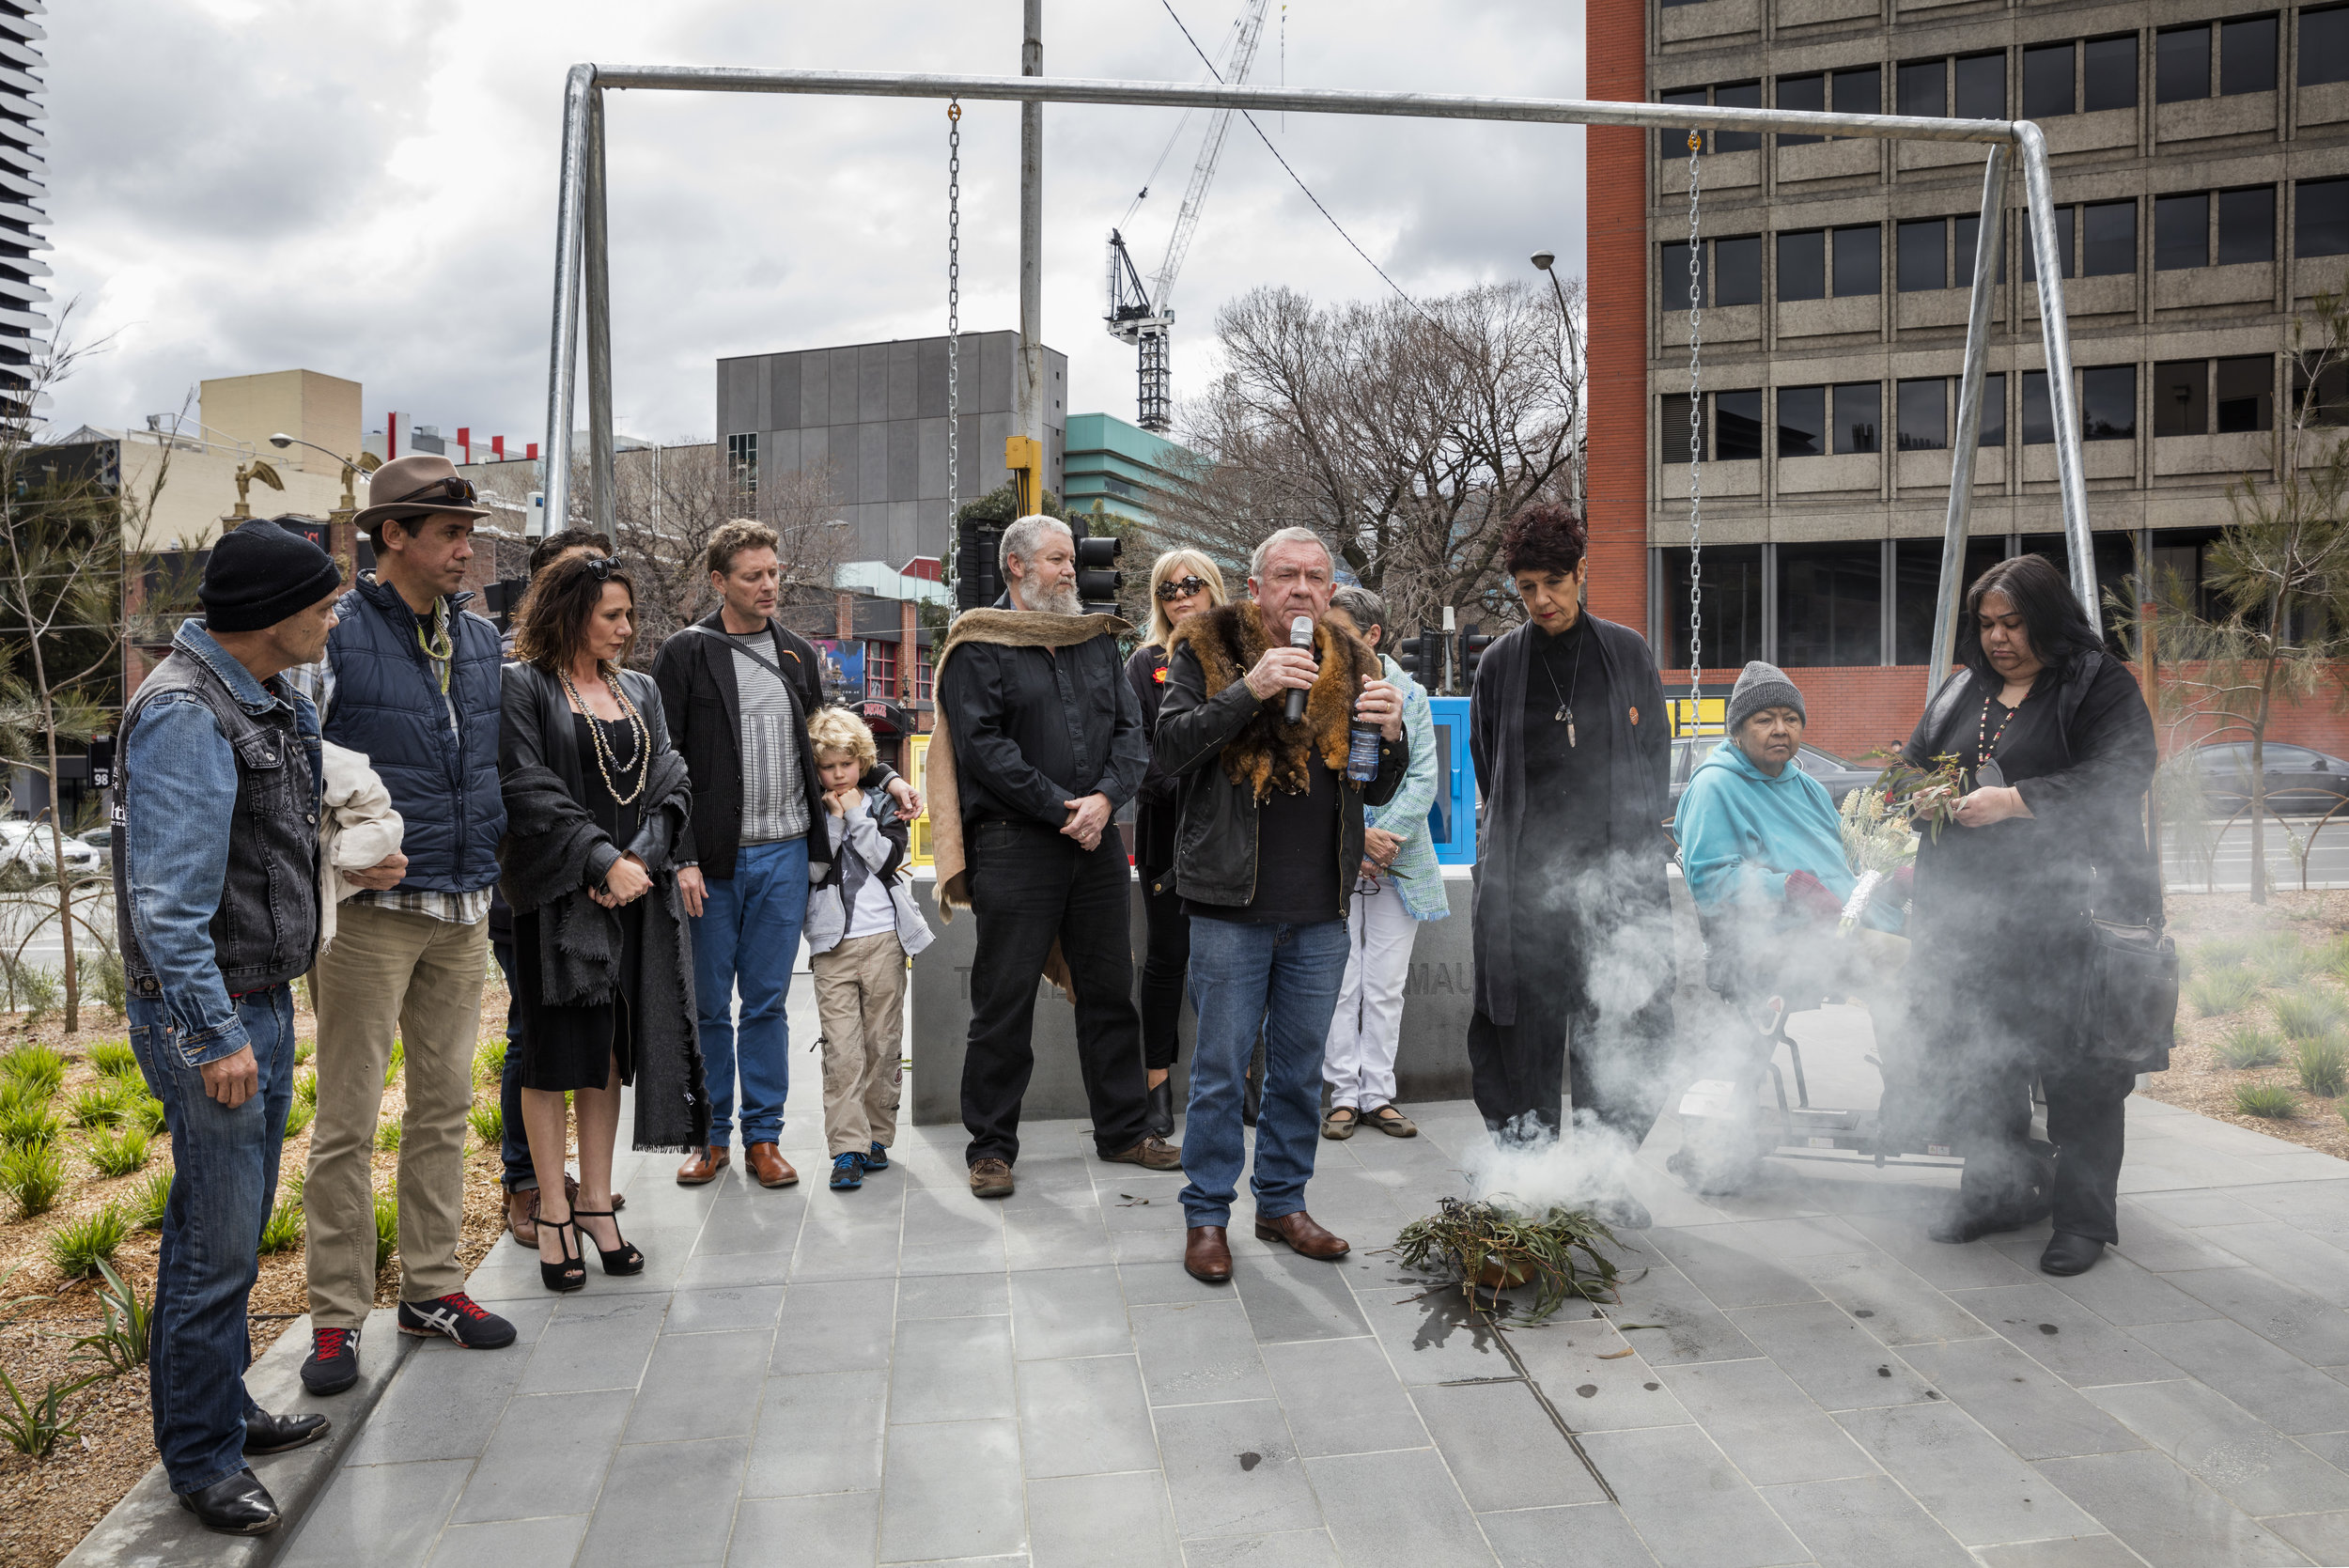 Launch of  Standing by Tunnerminnerwait and Maulboyheenner,  by Brook Andrew and Trent Walter, commissioned by City of Melbourne, 2016. Photograph by Dianna Snape.